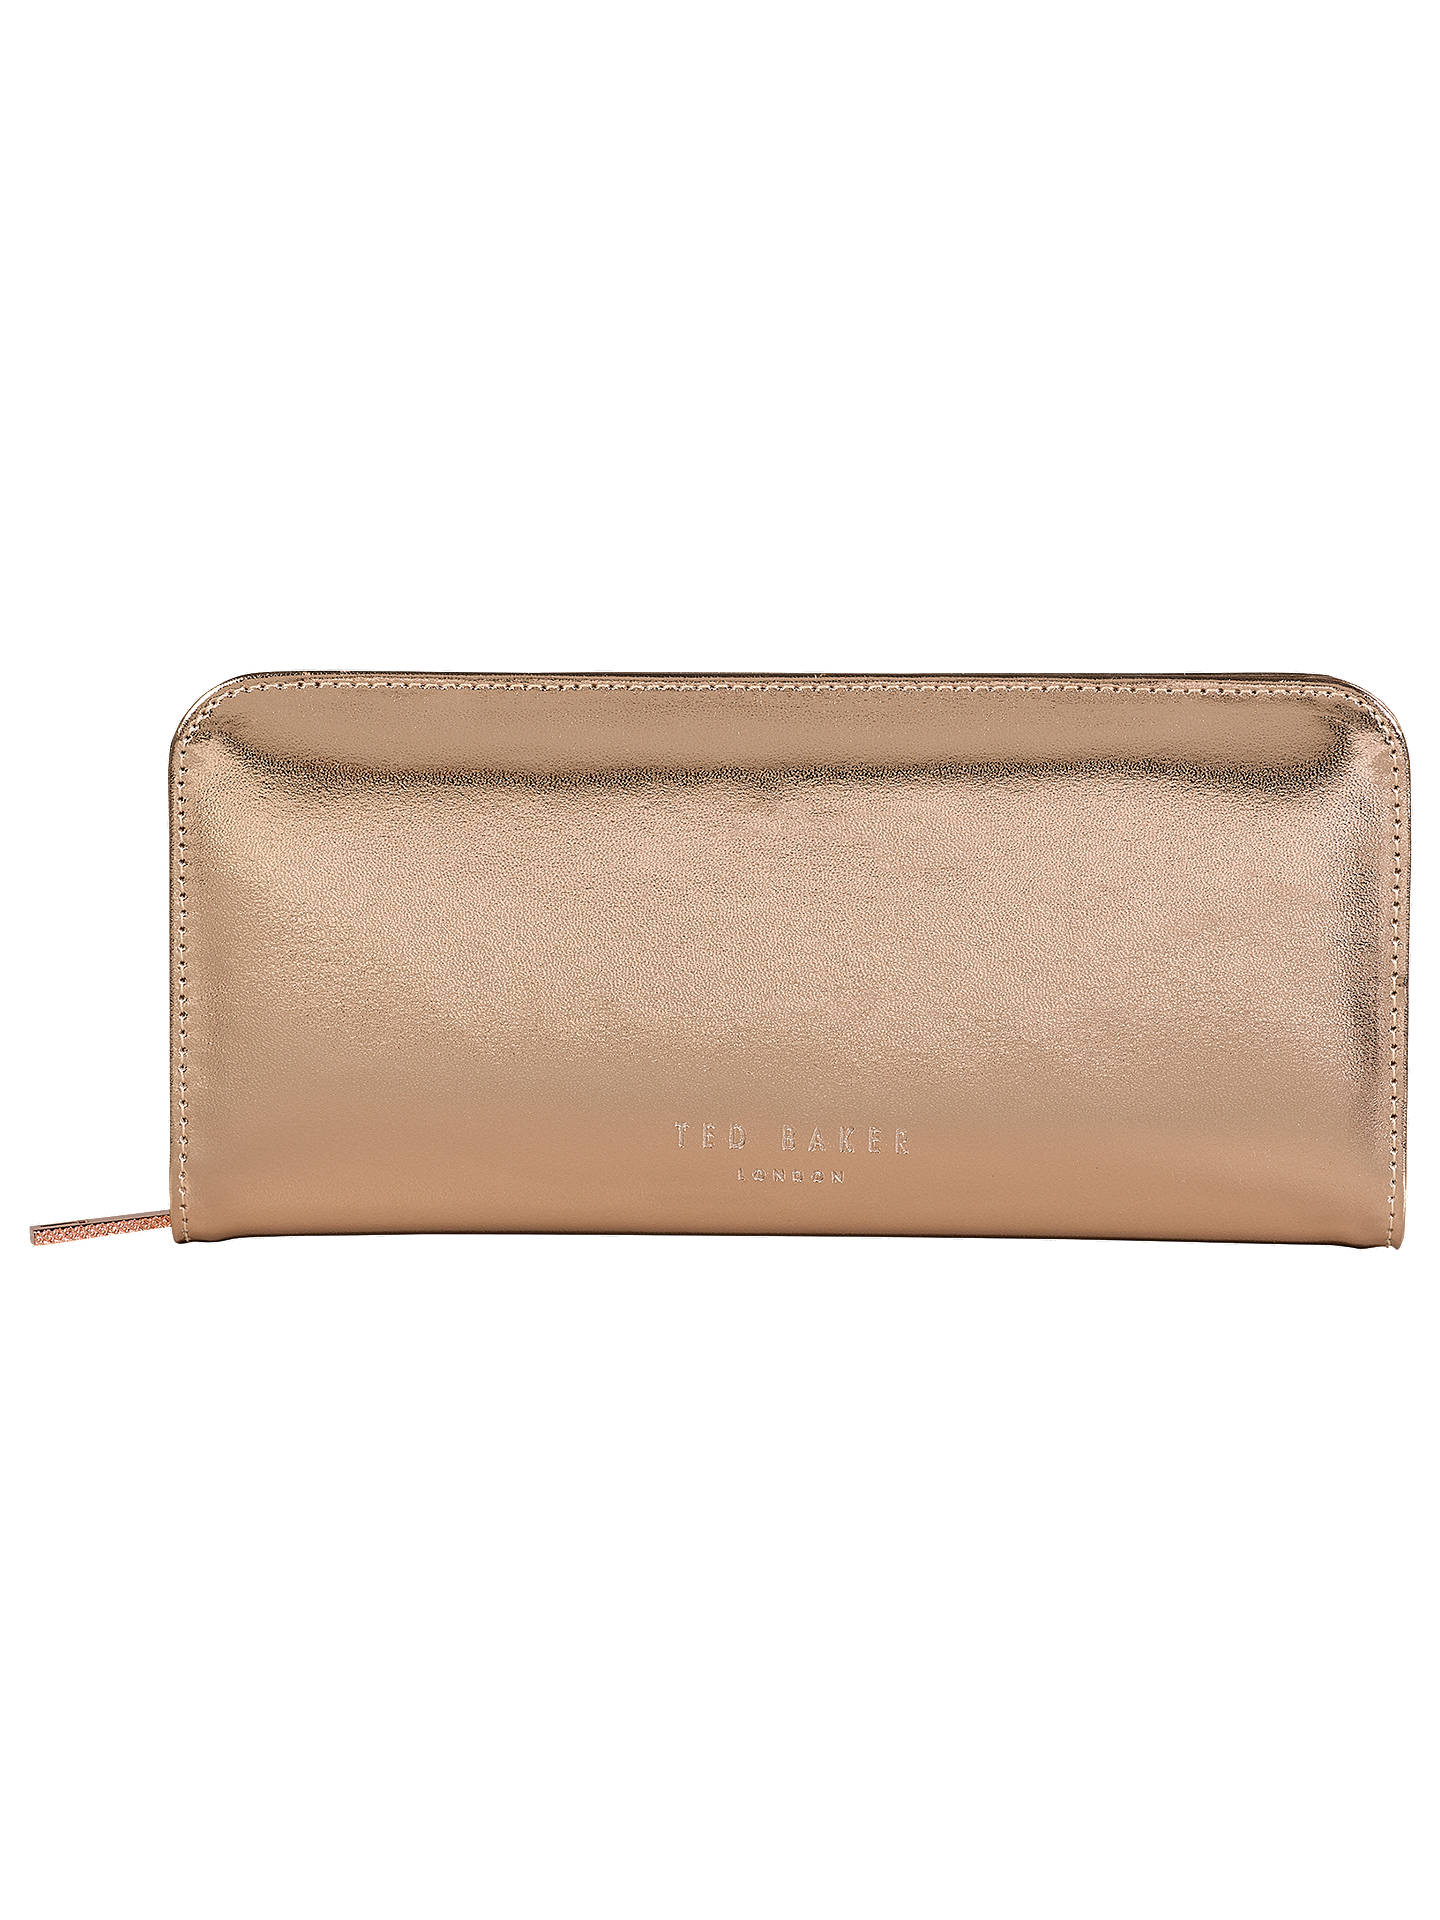 00709 Ted Baker pencil case